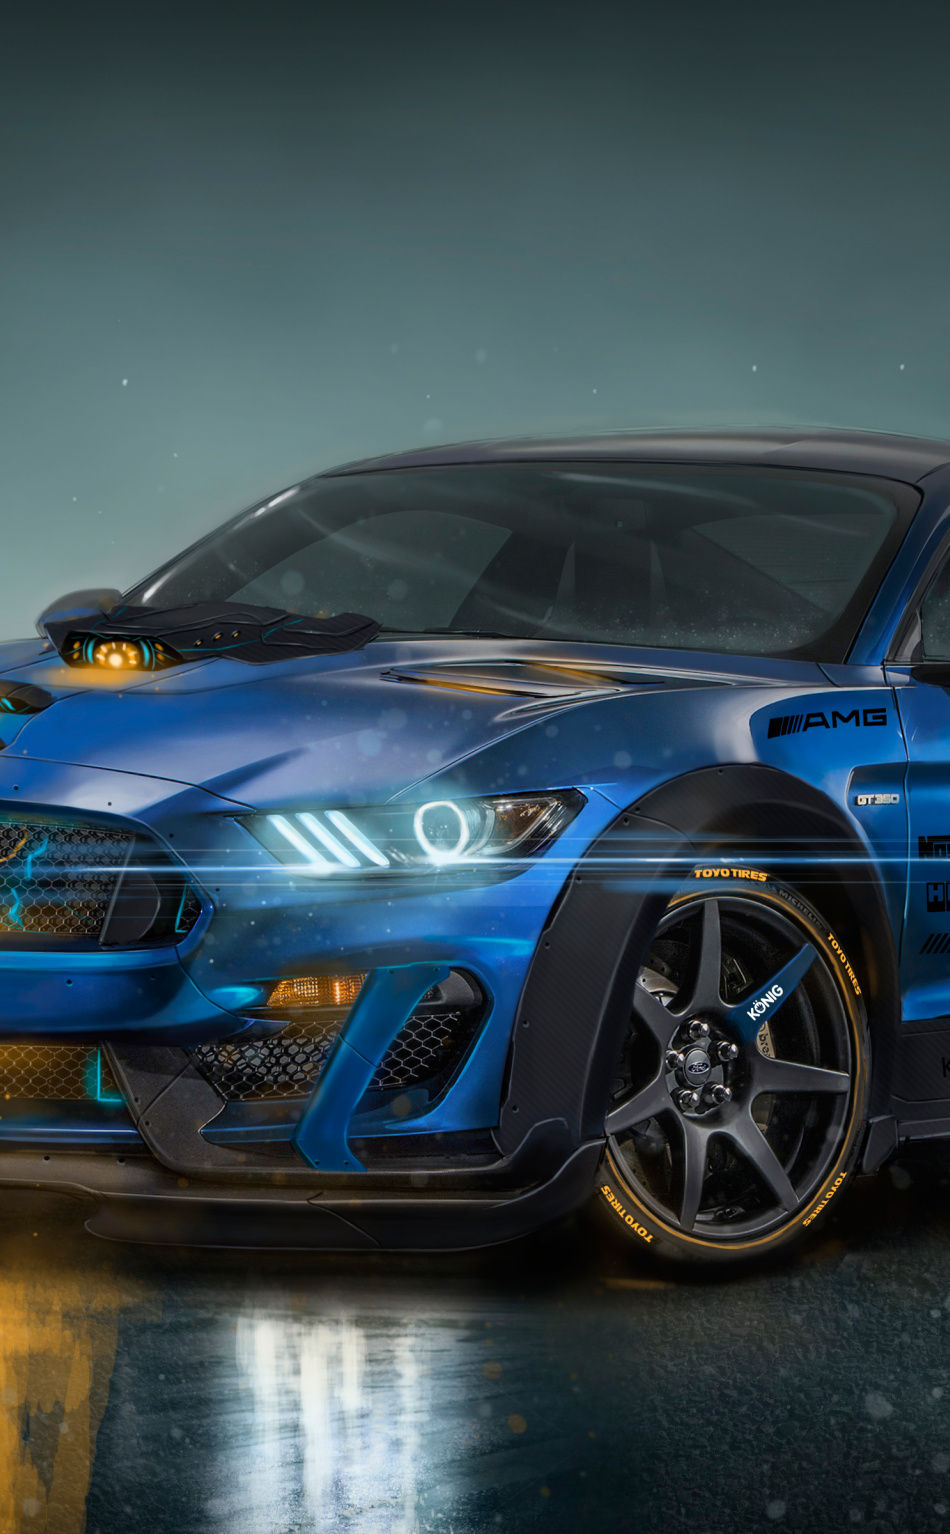 Wallpaper Ford Mustang Shelby Gt350 Sports Car 4k Iphone X Car Wallpaper Hd 2016754 Hd Wallpaper Backgrounds Download